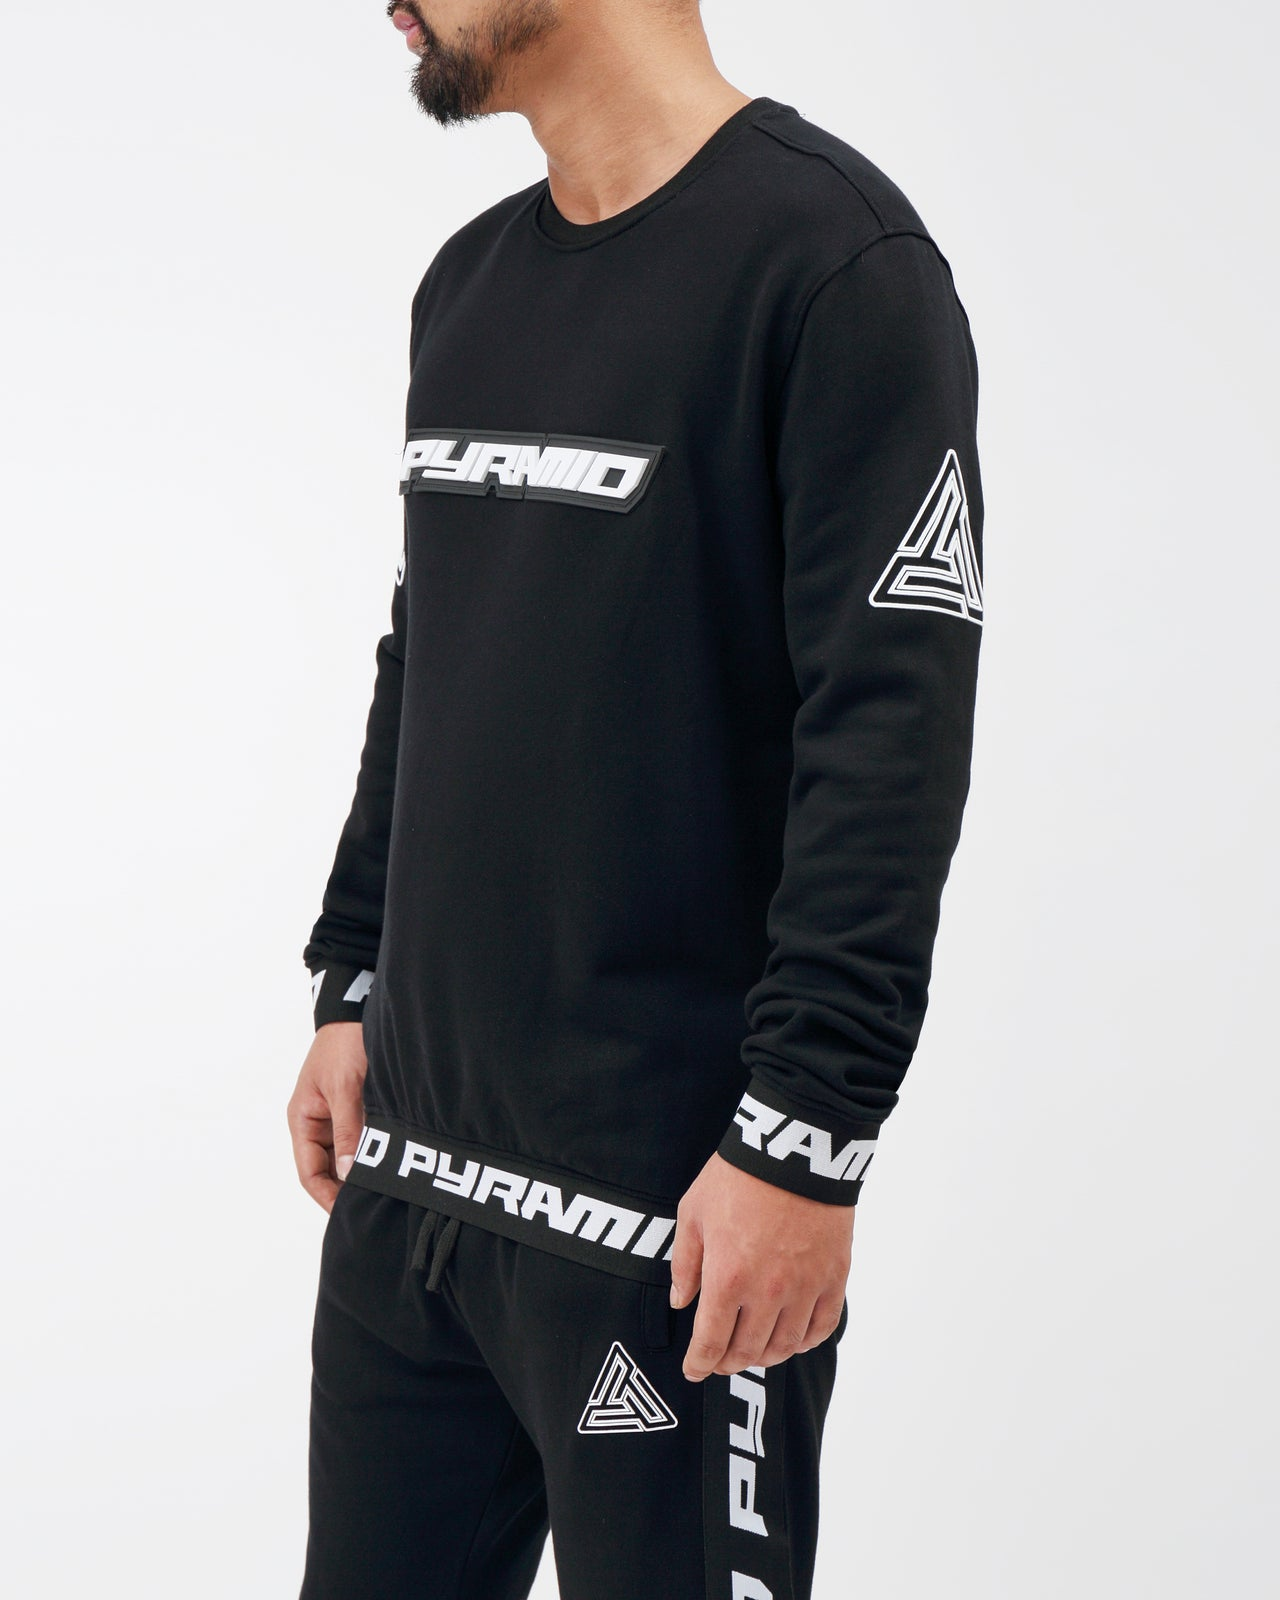 Pyramid Sweatshirt - Color: Black